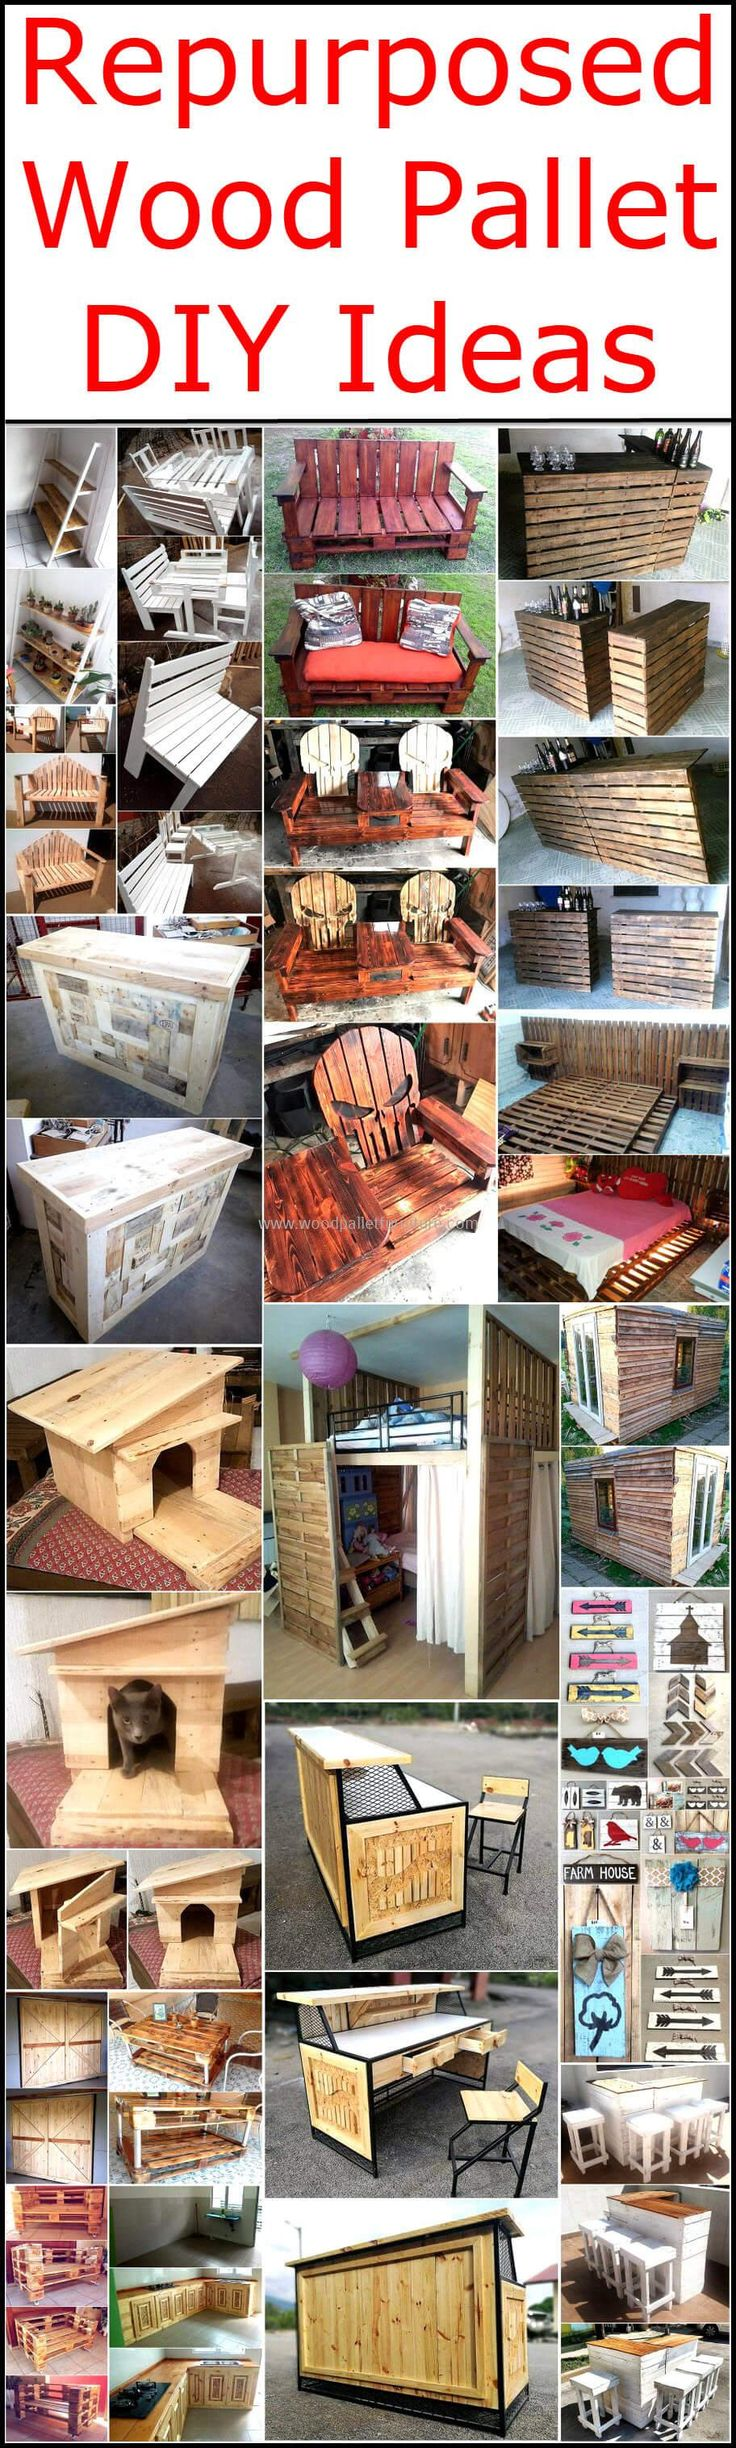 It is a healthy and creative activity to re-transform useless wood pallets  to patio